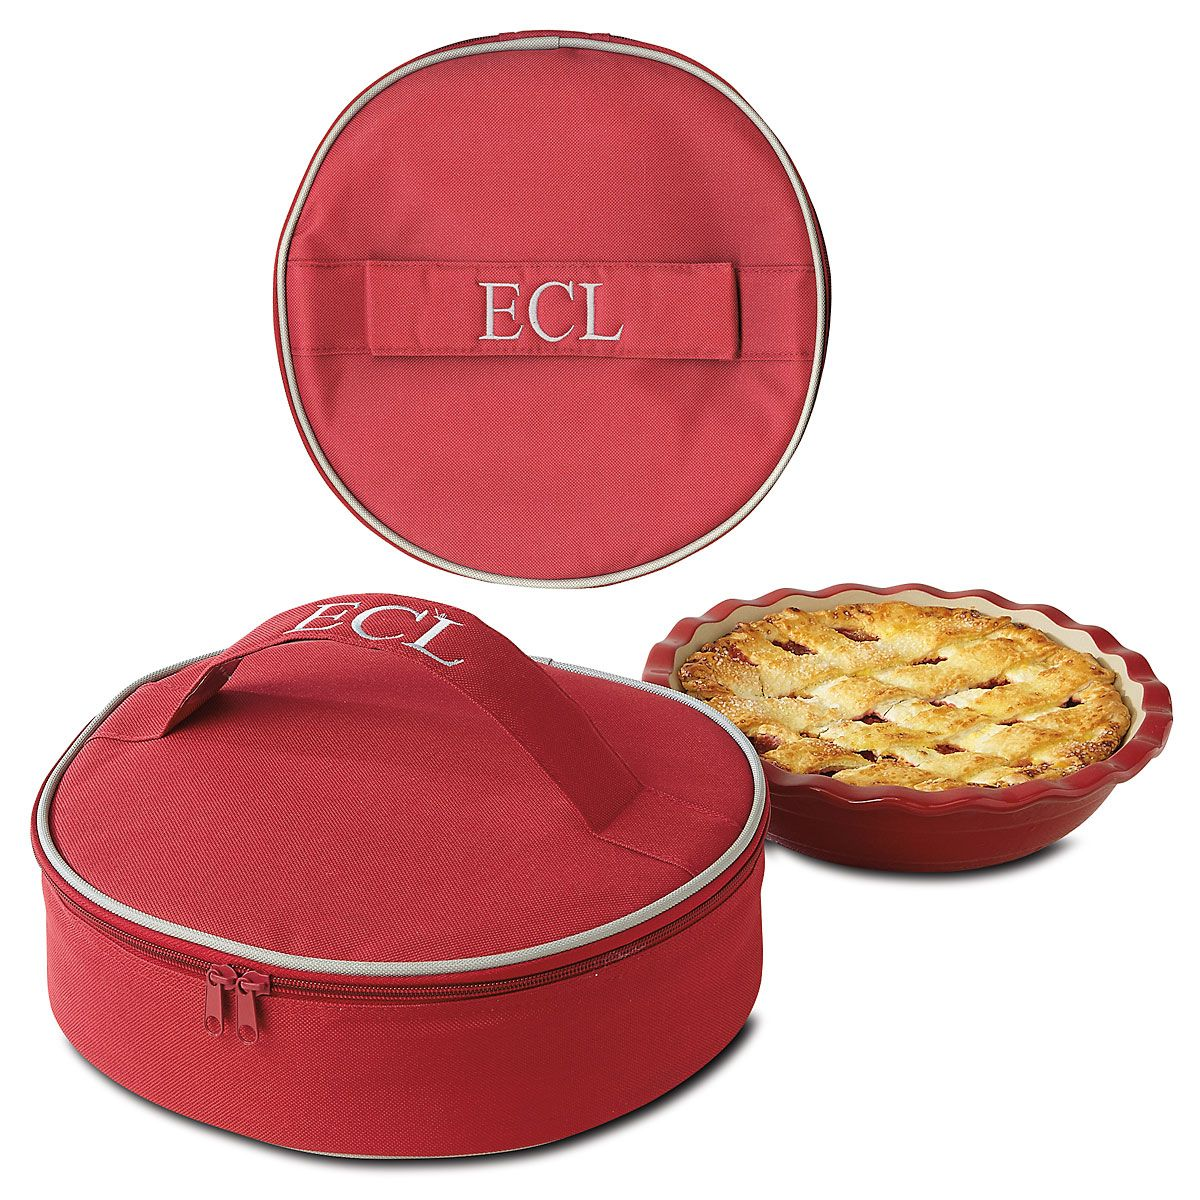 Personalized Pie Carrier